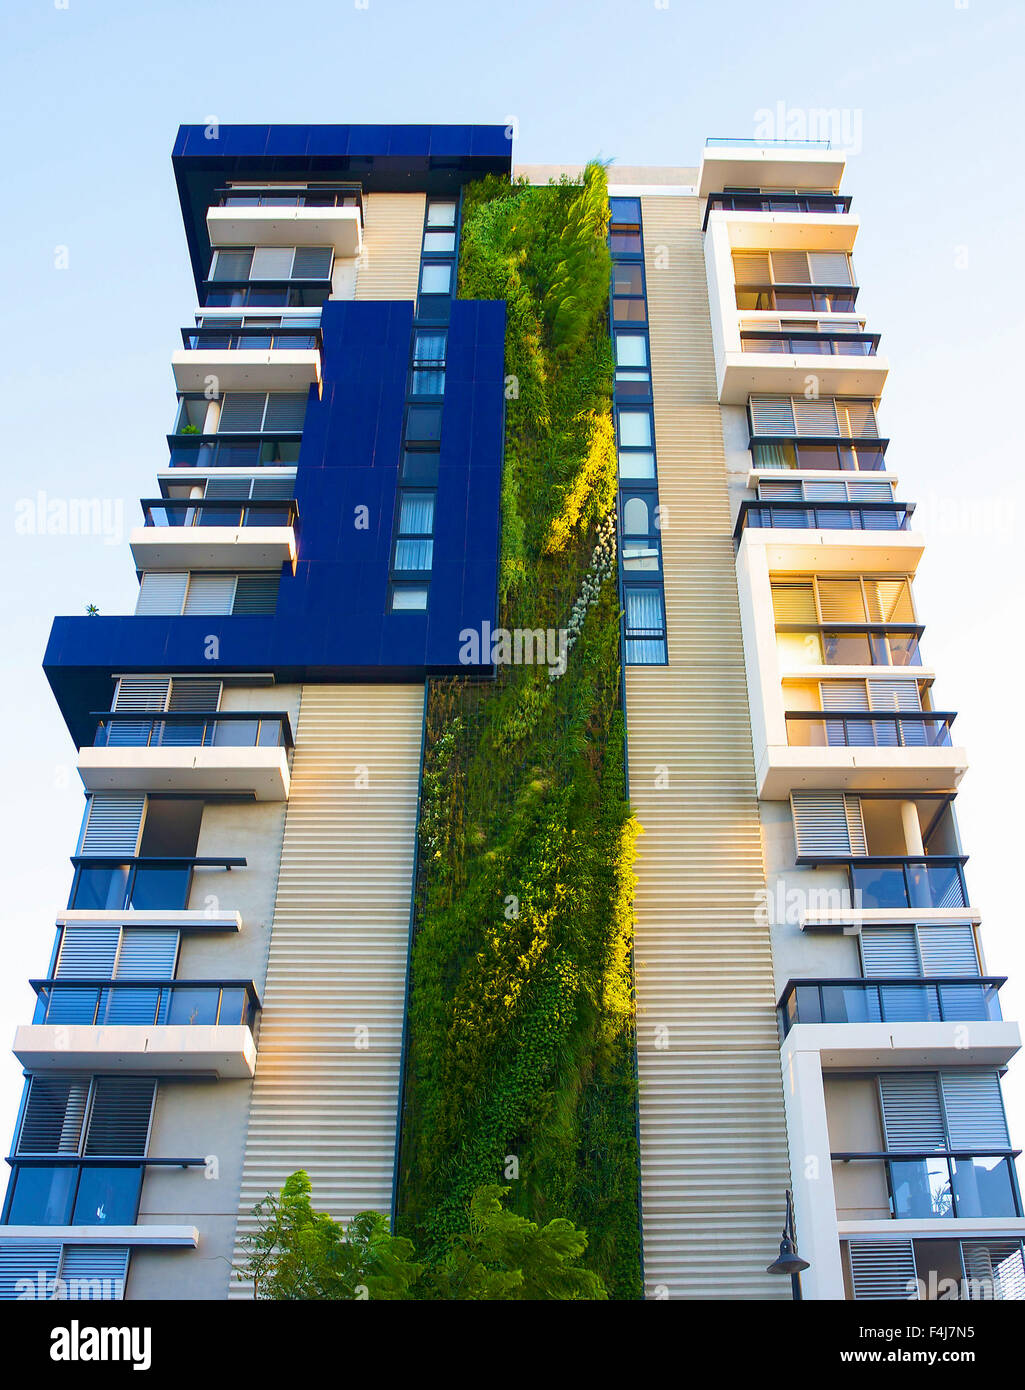 Patrick Blanc, a French botanist, has created his tallest vertical garden at a residential development in Sydney. - Stock Image